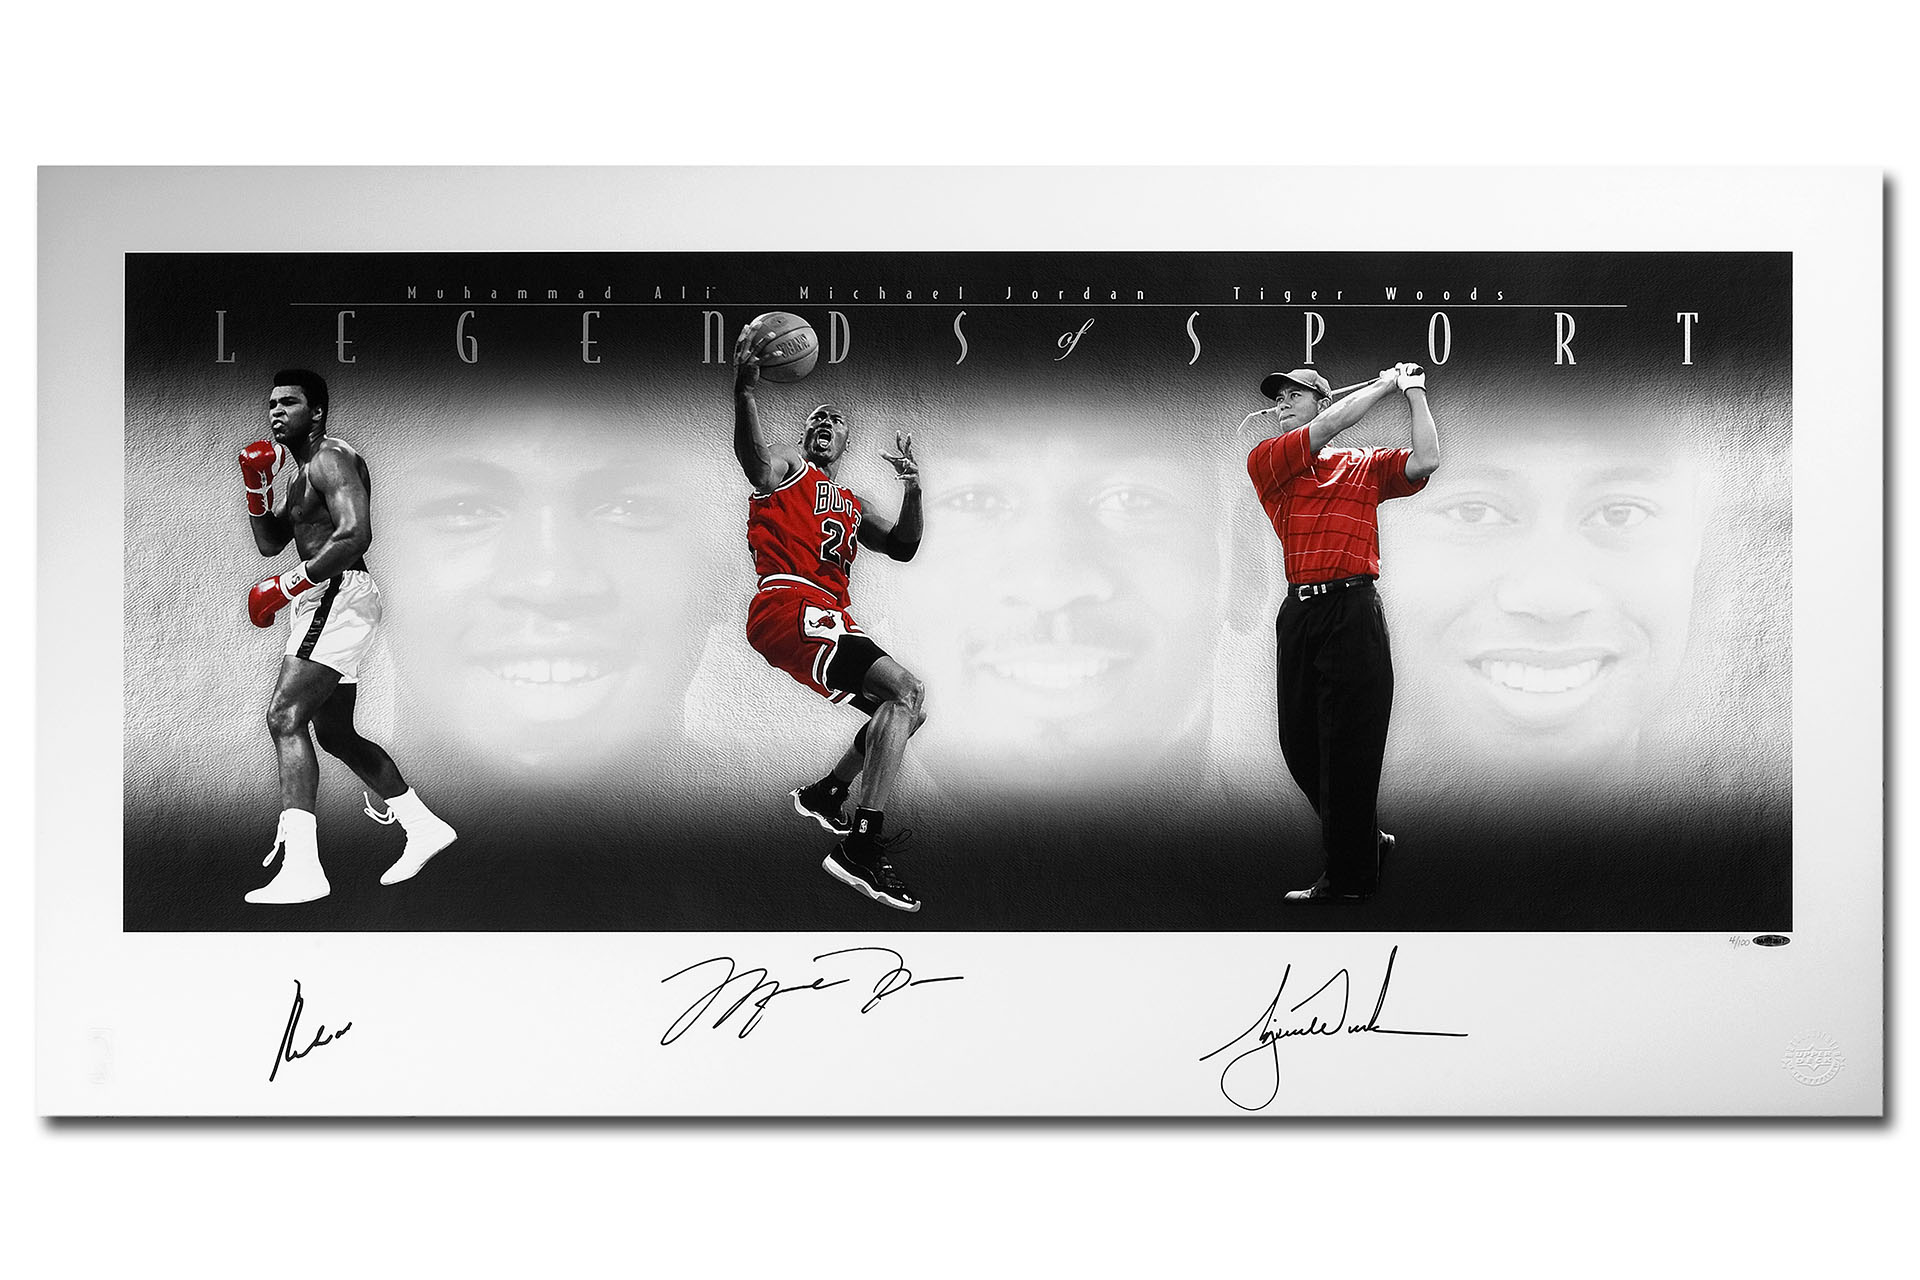 "MUHAMMAD ALI, MICHAEL JORDAN & TIGER WOODS AUTOGRAPHED LEGENDS OF SPORT PLATINUM 49"" X 25"" COLLAGE"